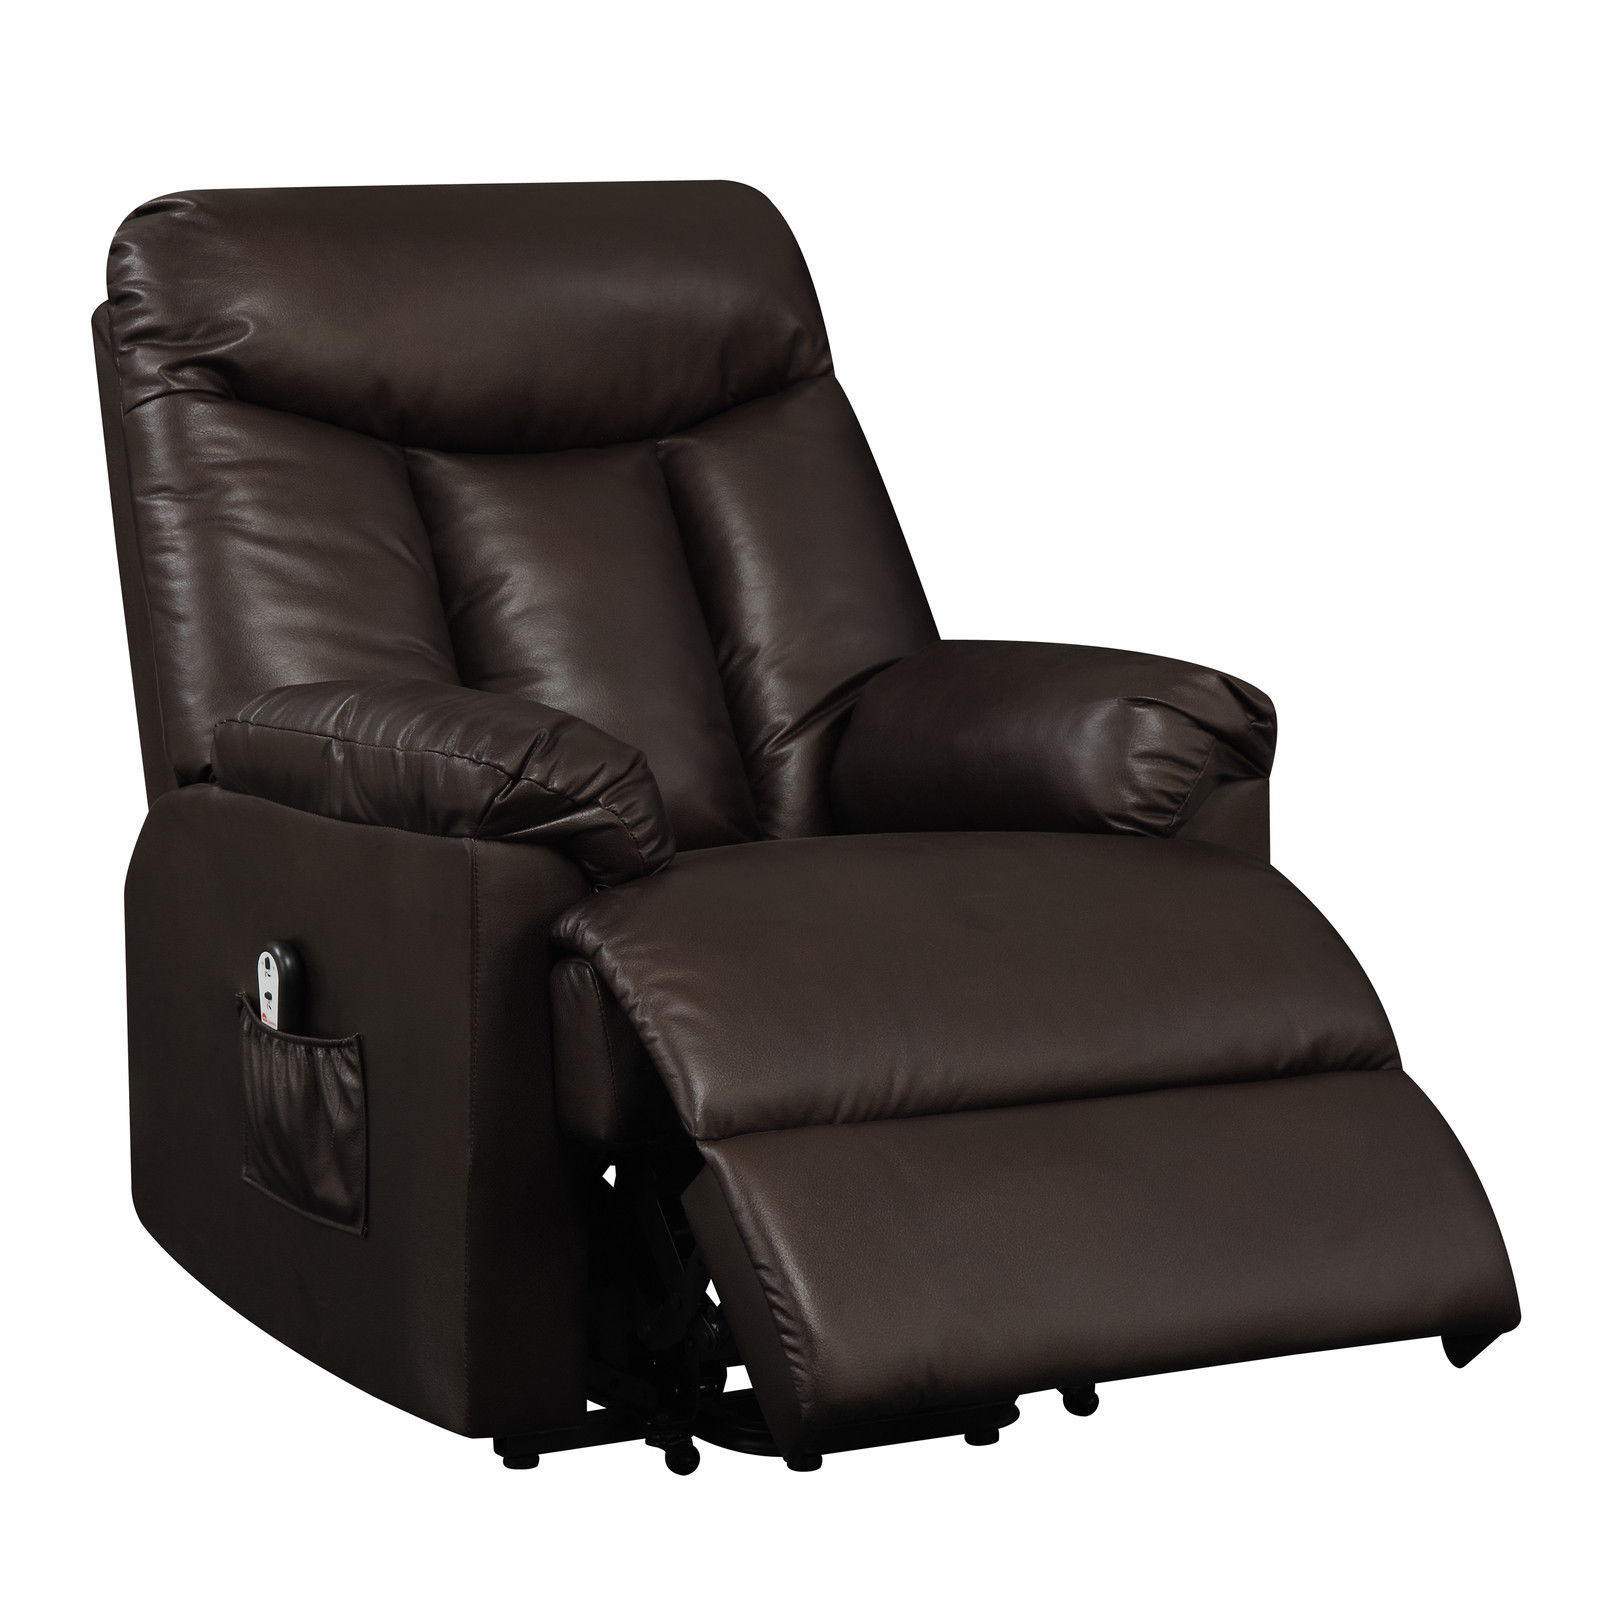 Electric Lift Chair Recliner Brown Leather Power Motion Lounge Seat New Chairs